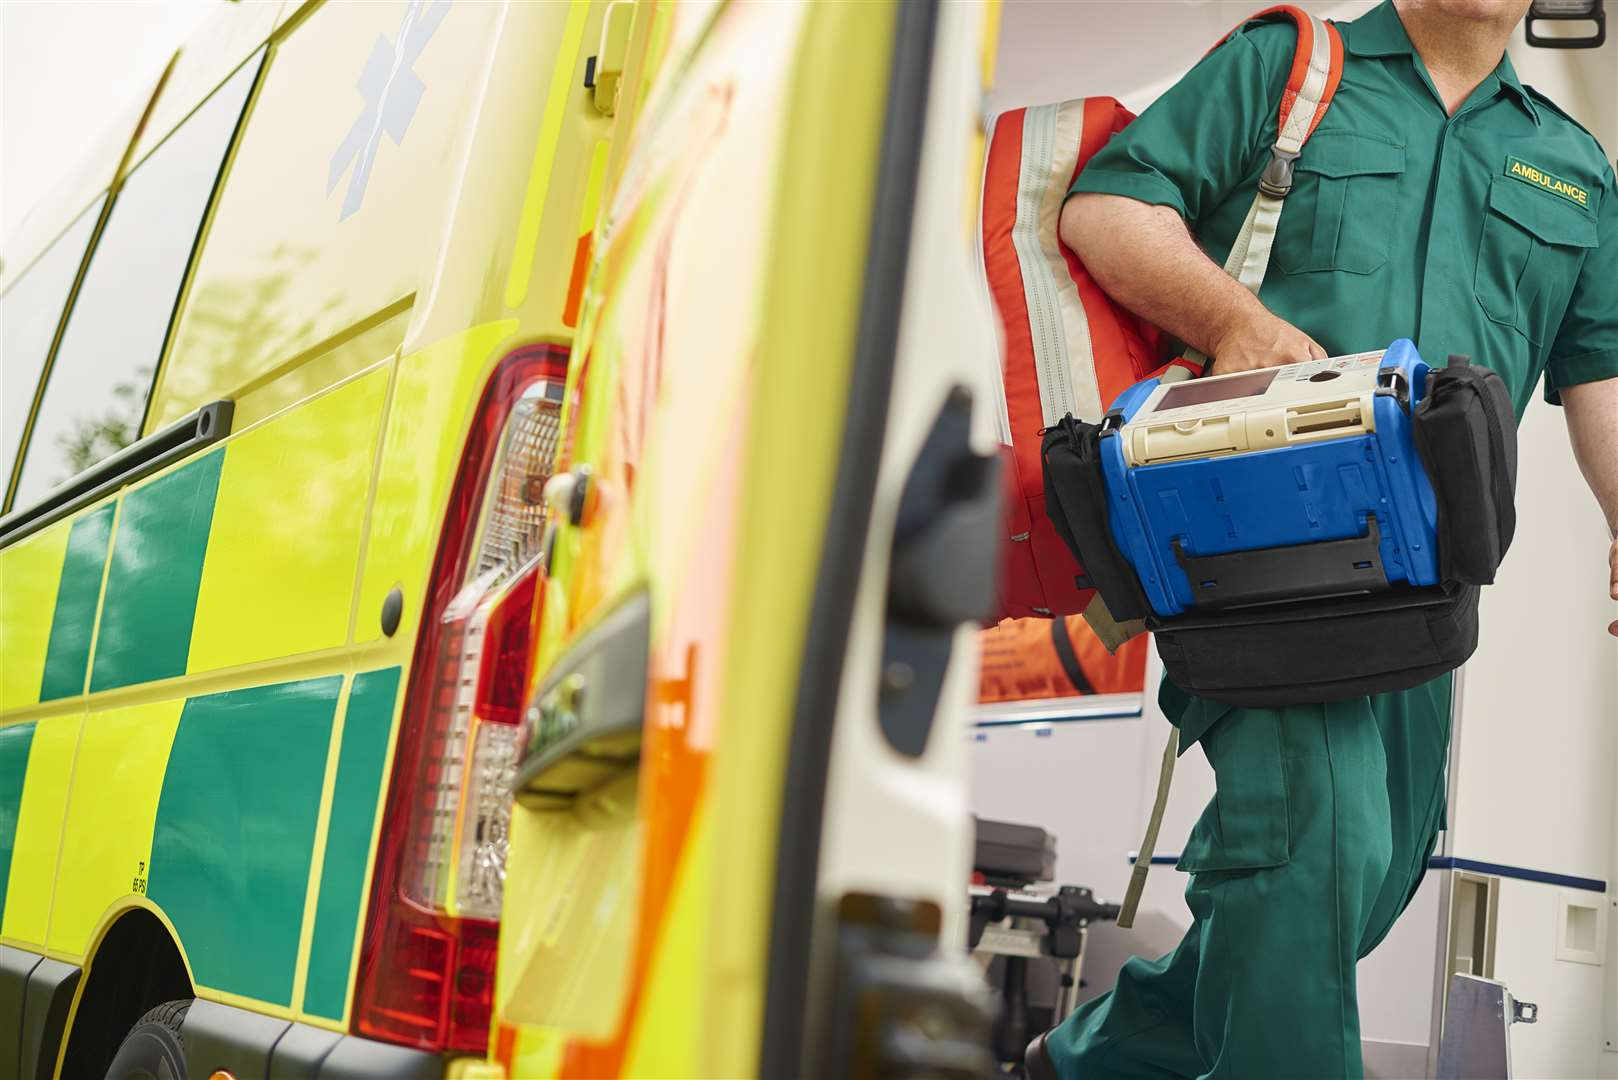 Emergency services were called to a medical episode on Hardwick Road in King's Lynn this afternoon (Thursday, November 12)